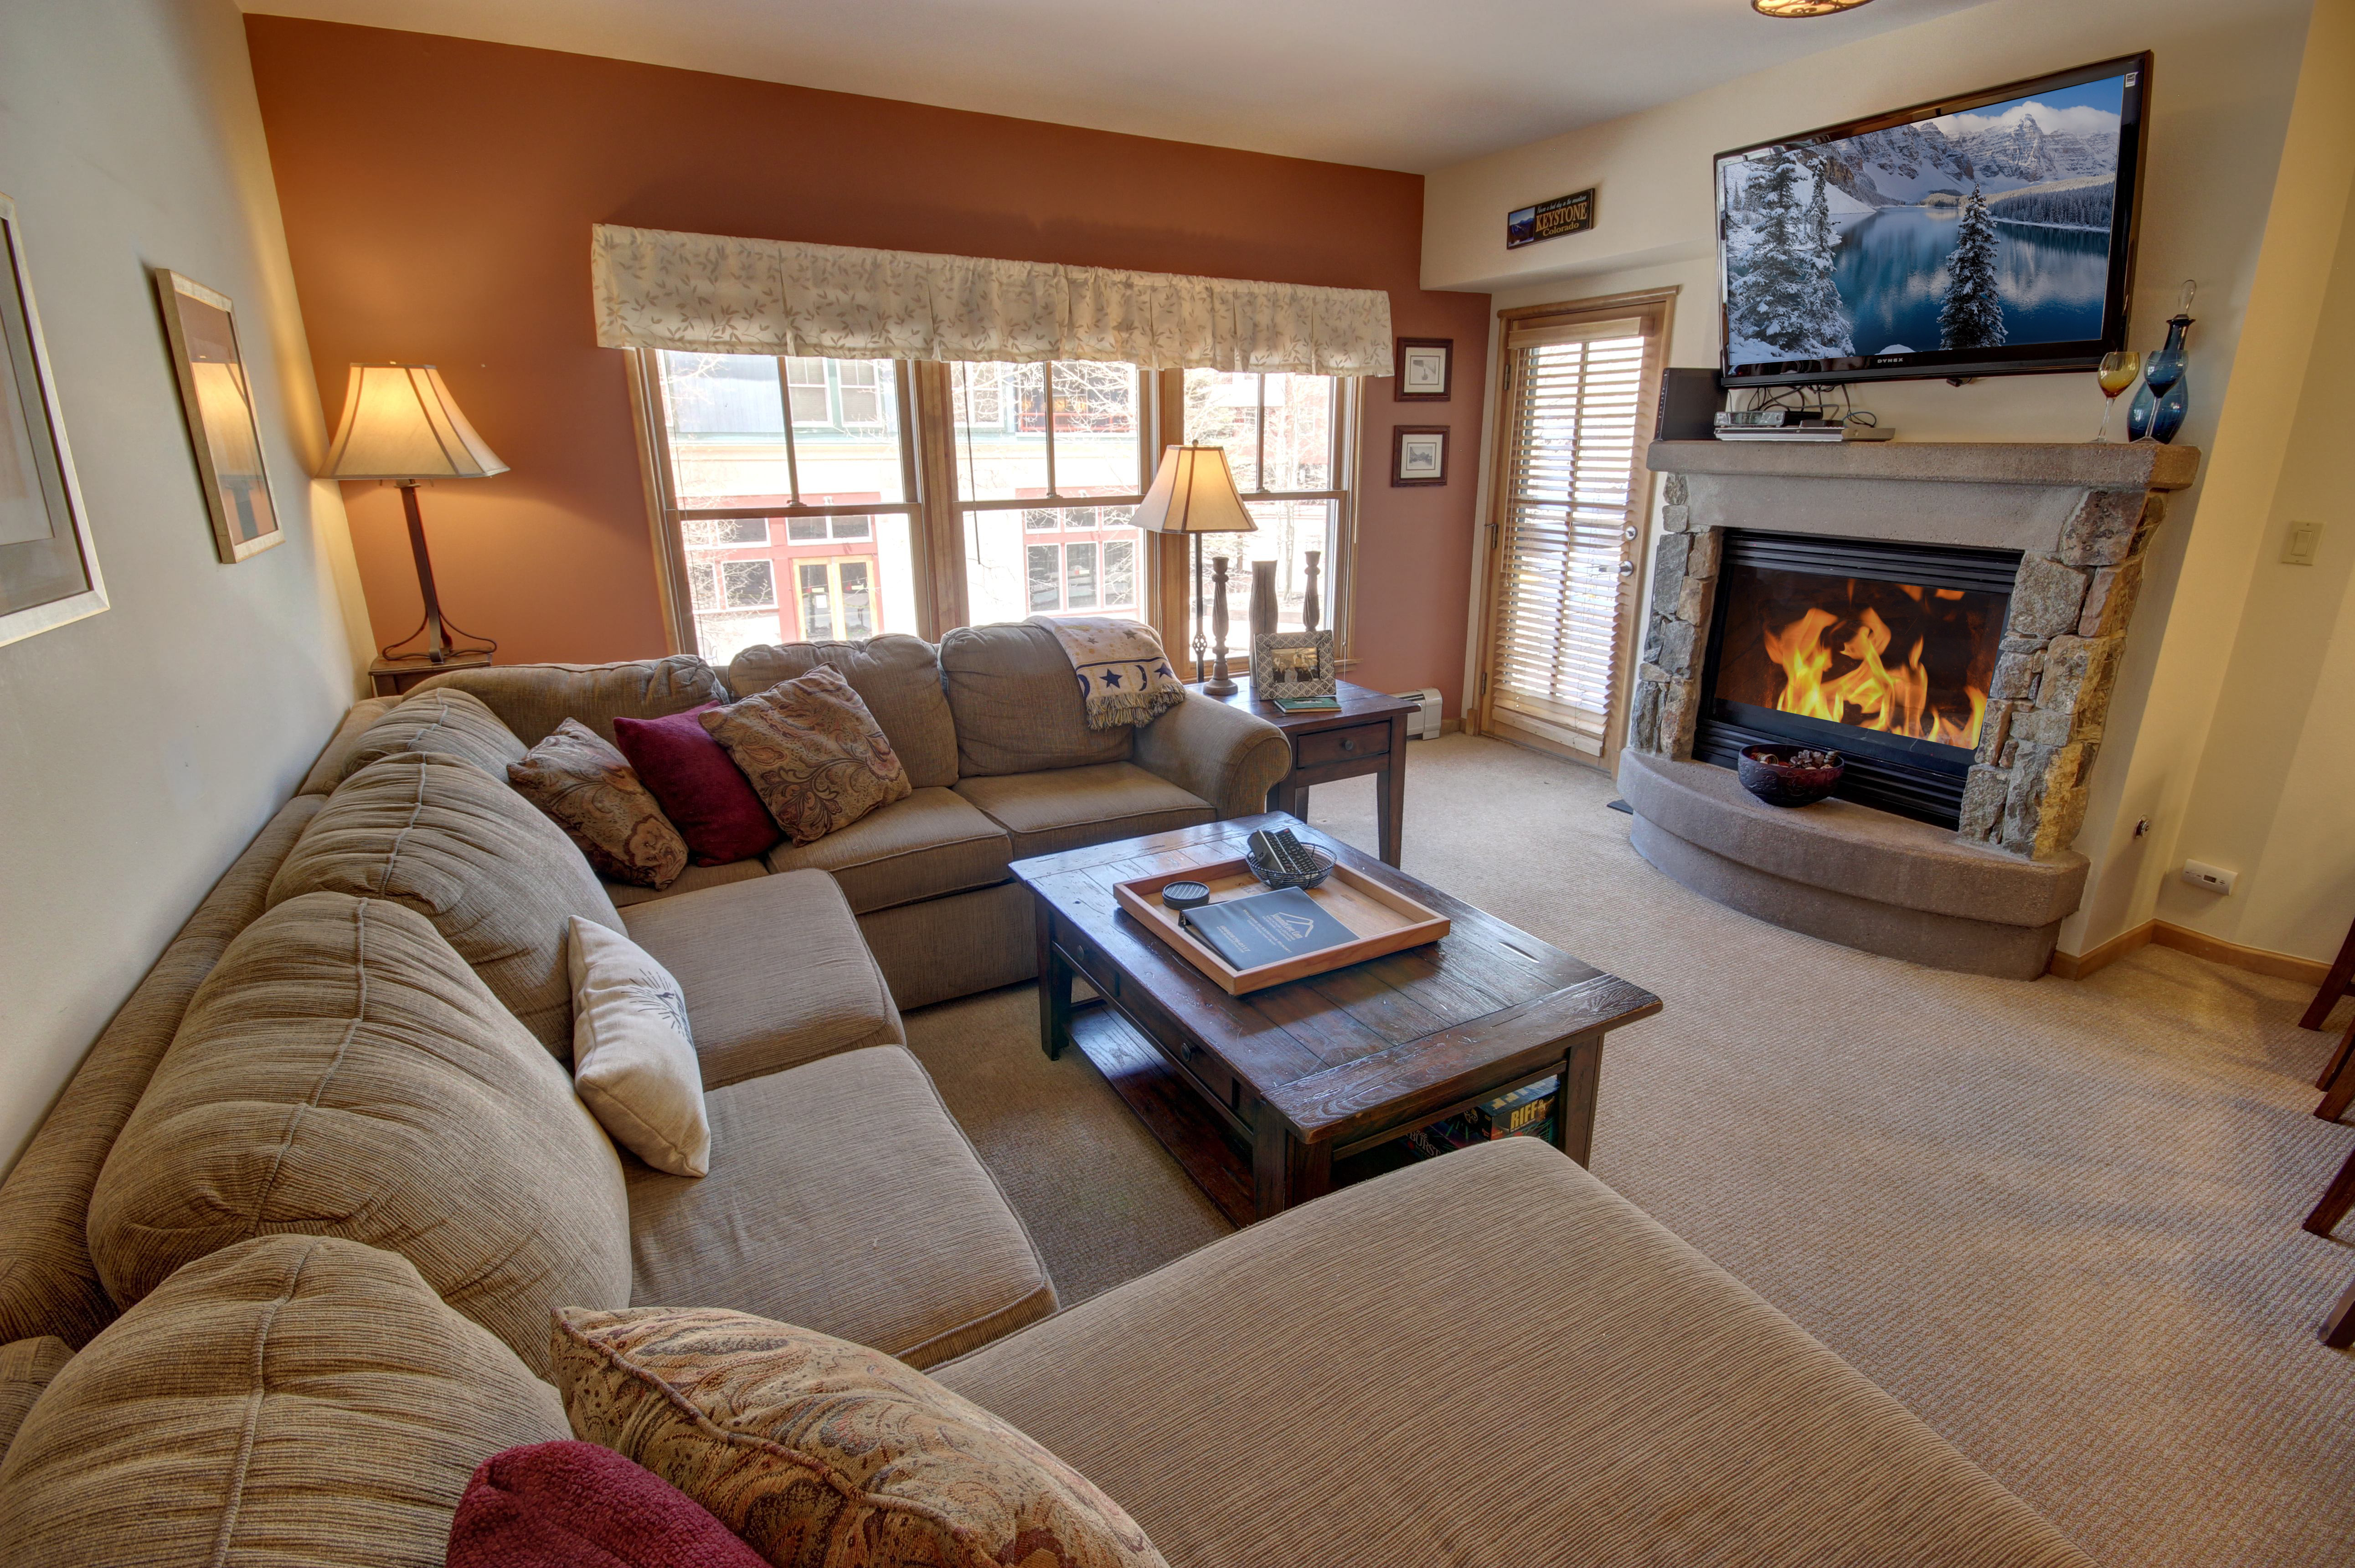 Living room with cozy fireplace and relaxing flat screen TV